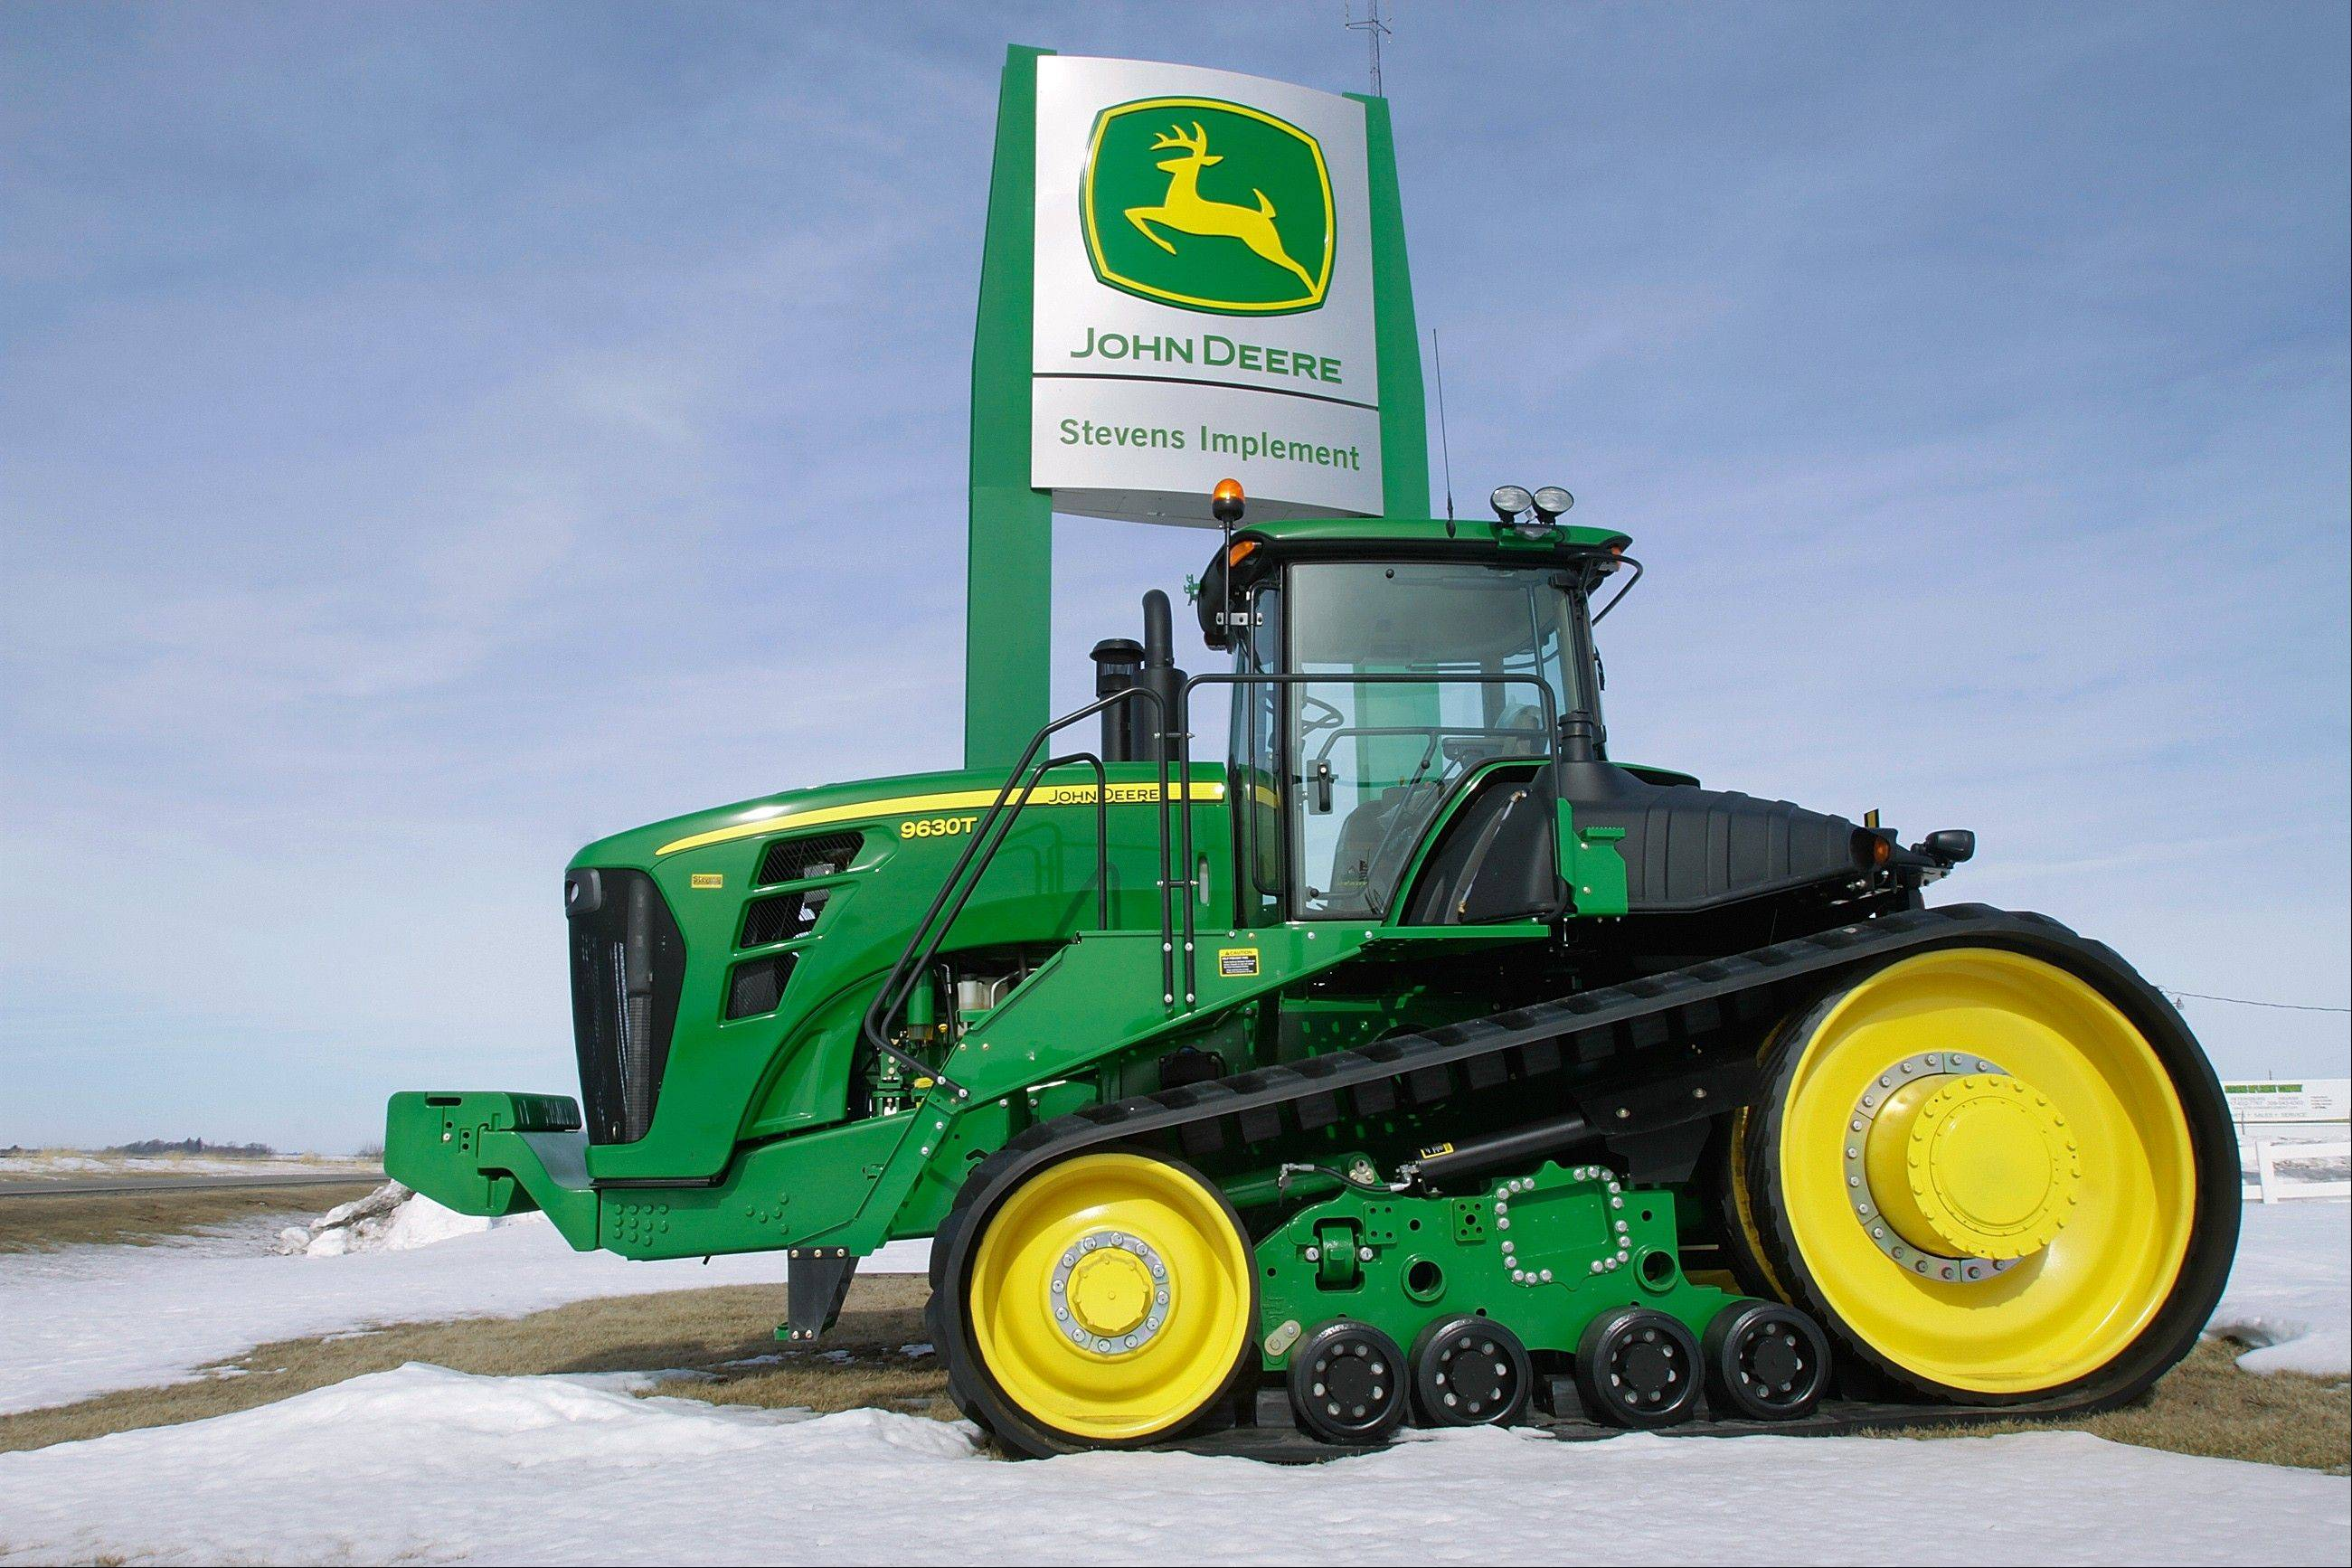 A John Deere tractor at the Stevens Implement Company, a John Deere dealership, in Petersburg.